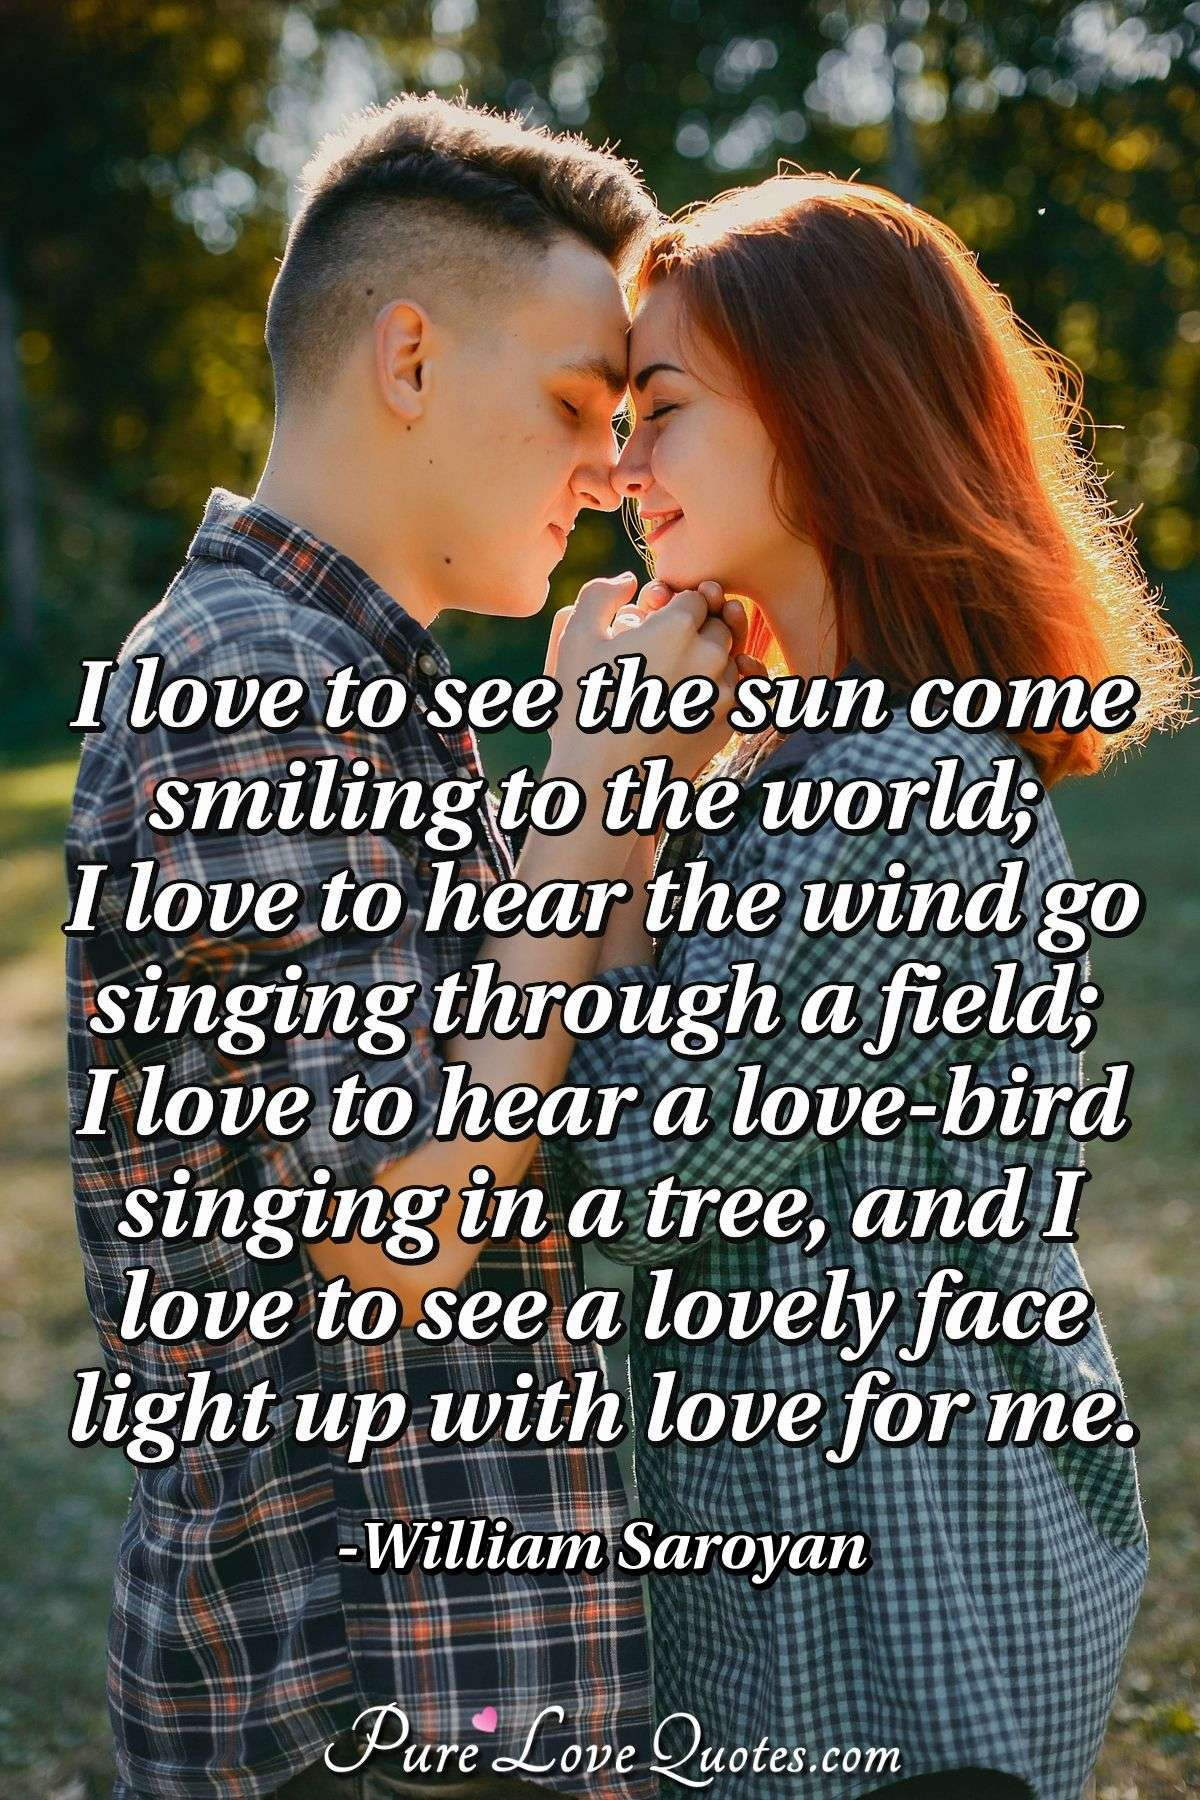 I love to see the sun come smiling to the world; I love to hear the wind go singing through a field; I love to hear a love-bird singing in a tree, and I love to see a lovely face light up with love for me. - William Saroyan